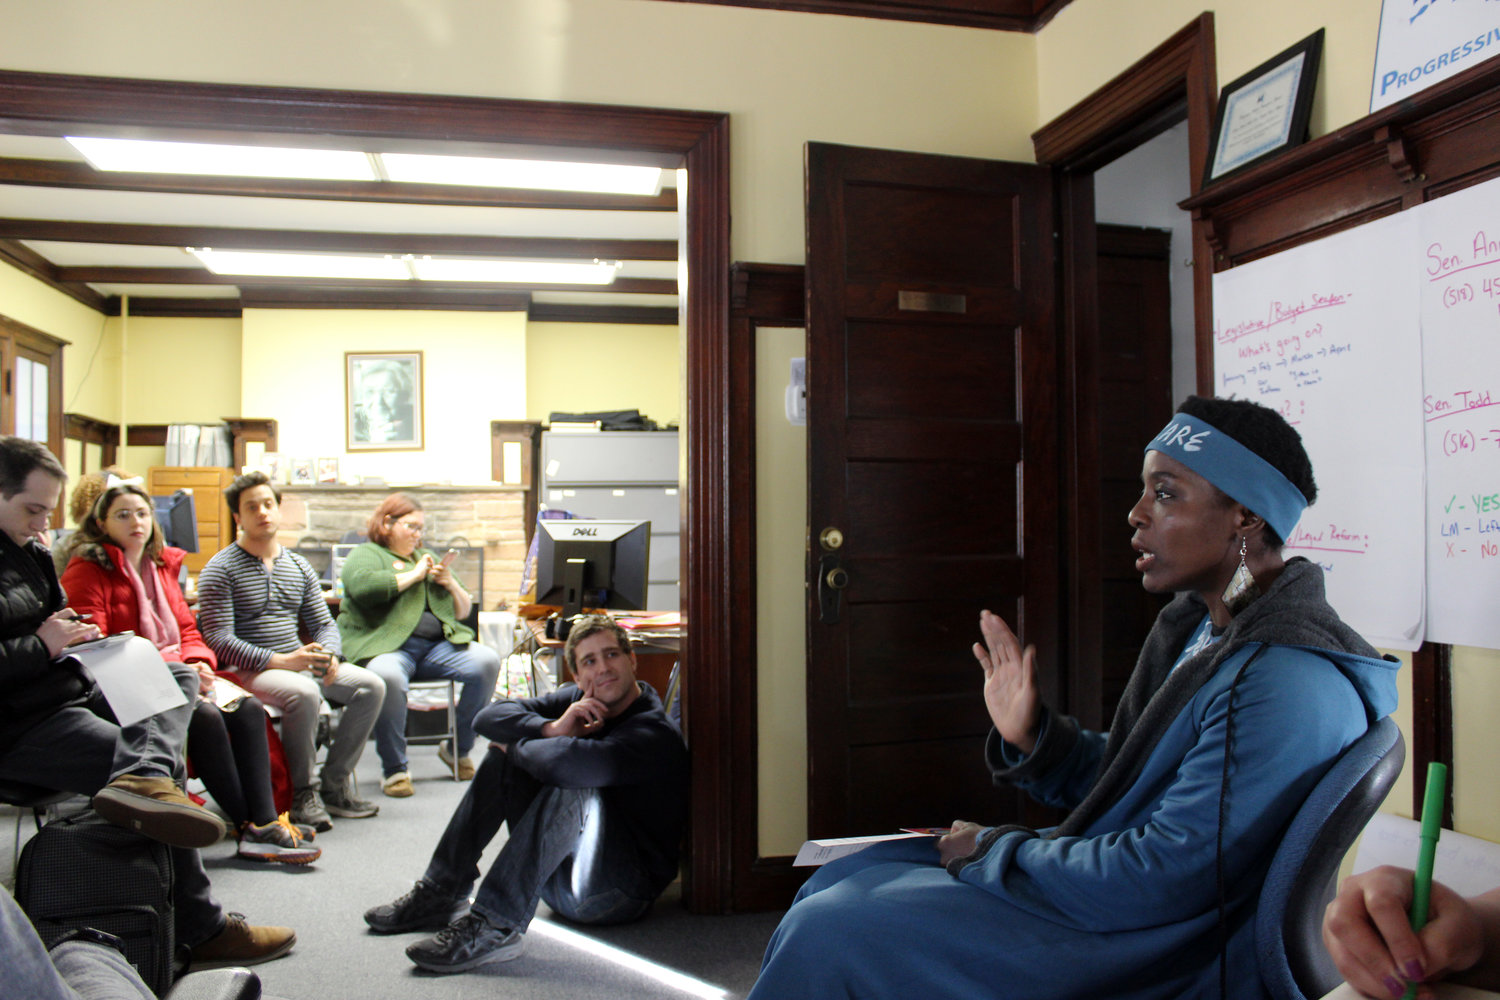 Patricia Okoumou joined with immigration rights activists at the Long Island Progressive Coalition in Massapequa on Feb. 10, where they wrote letters urging Laura Curran to phase out Nassau County's cooperation with the U.S. Immigration and Customs Enforcement agency.